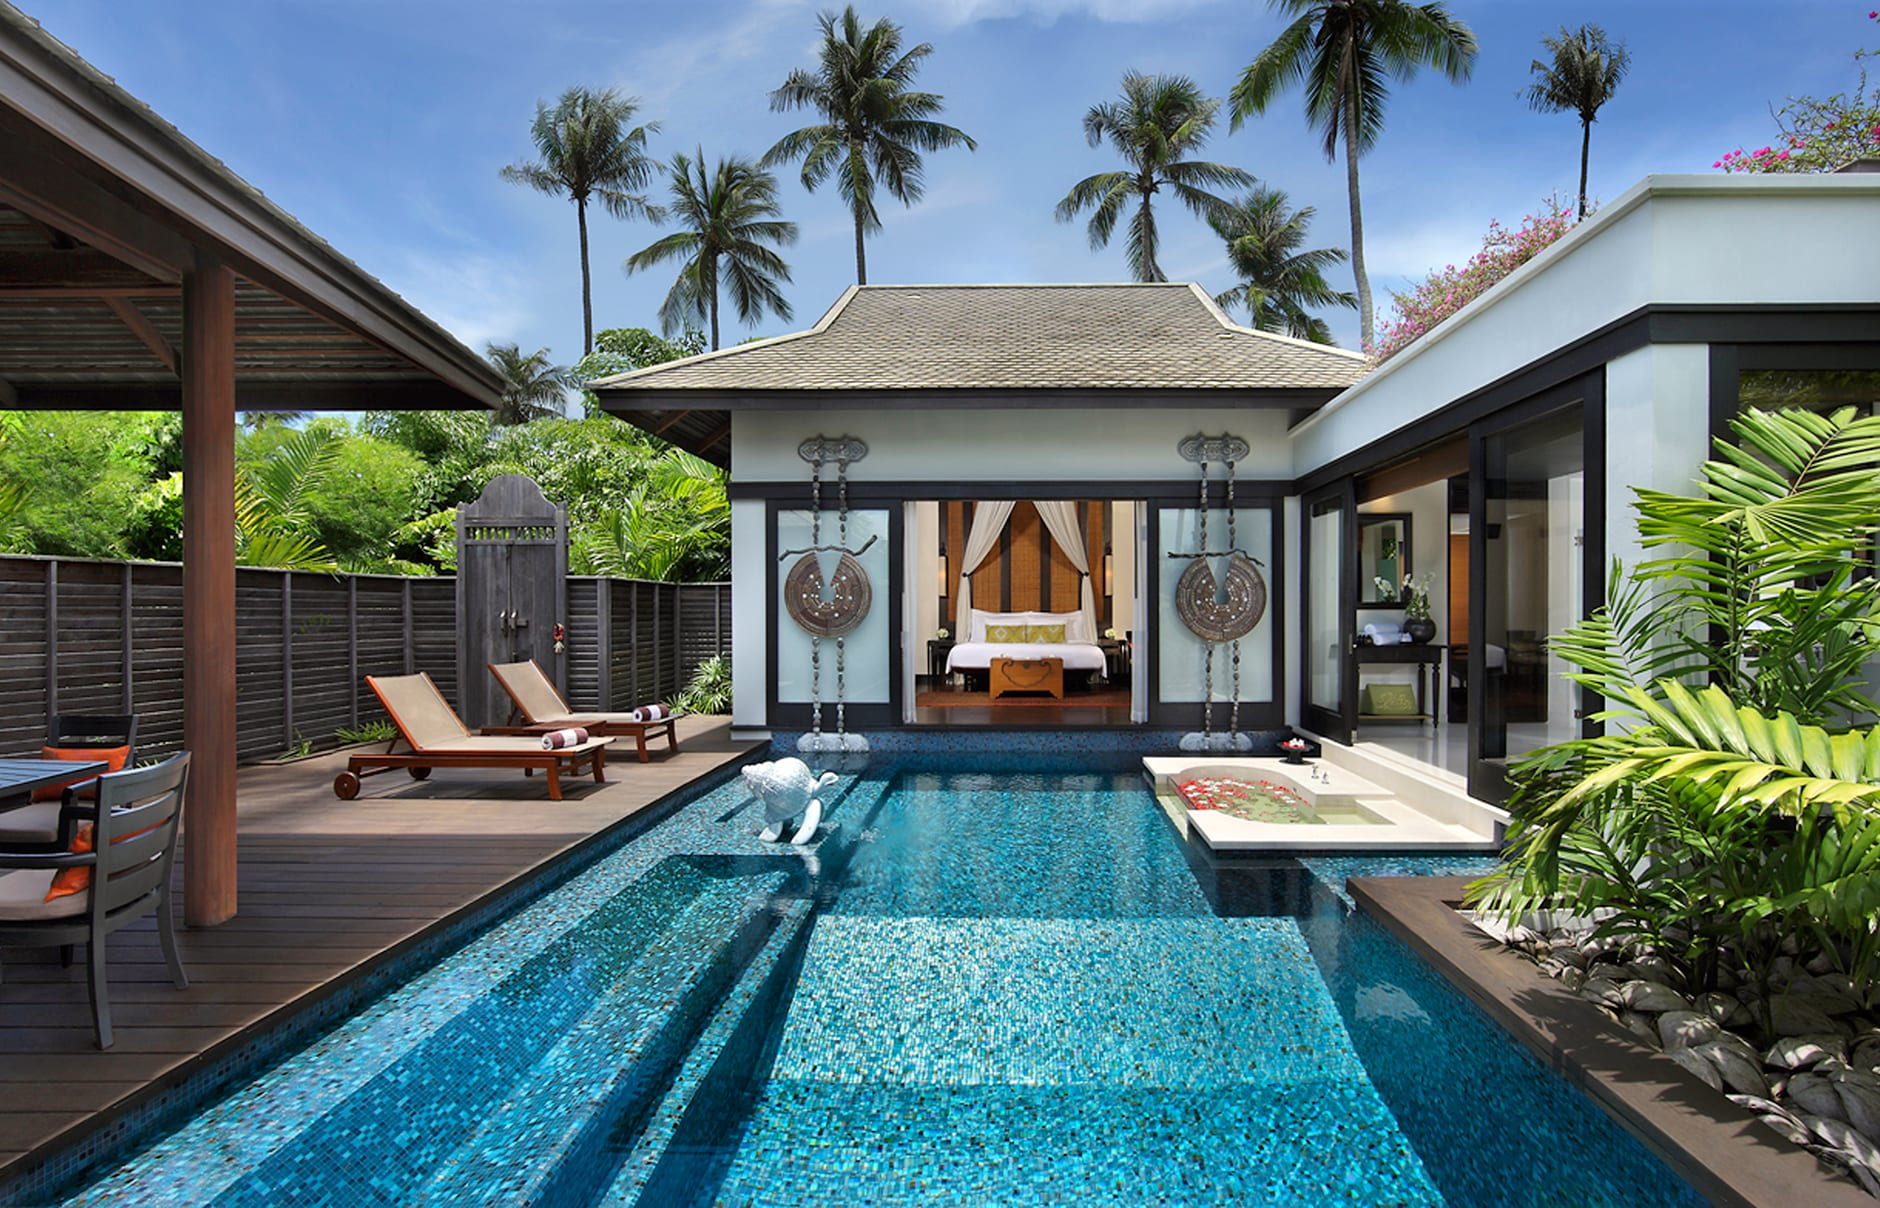 Anantara phuket villas luxury hotels travelplusstyle for Pool design for villa